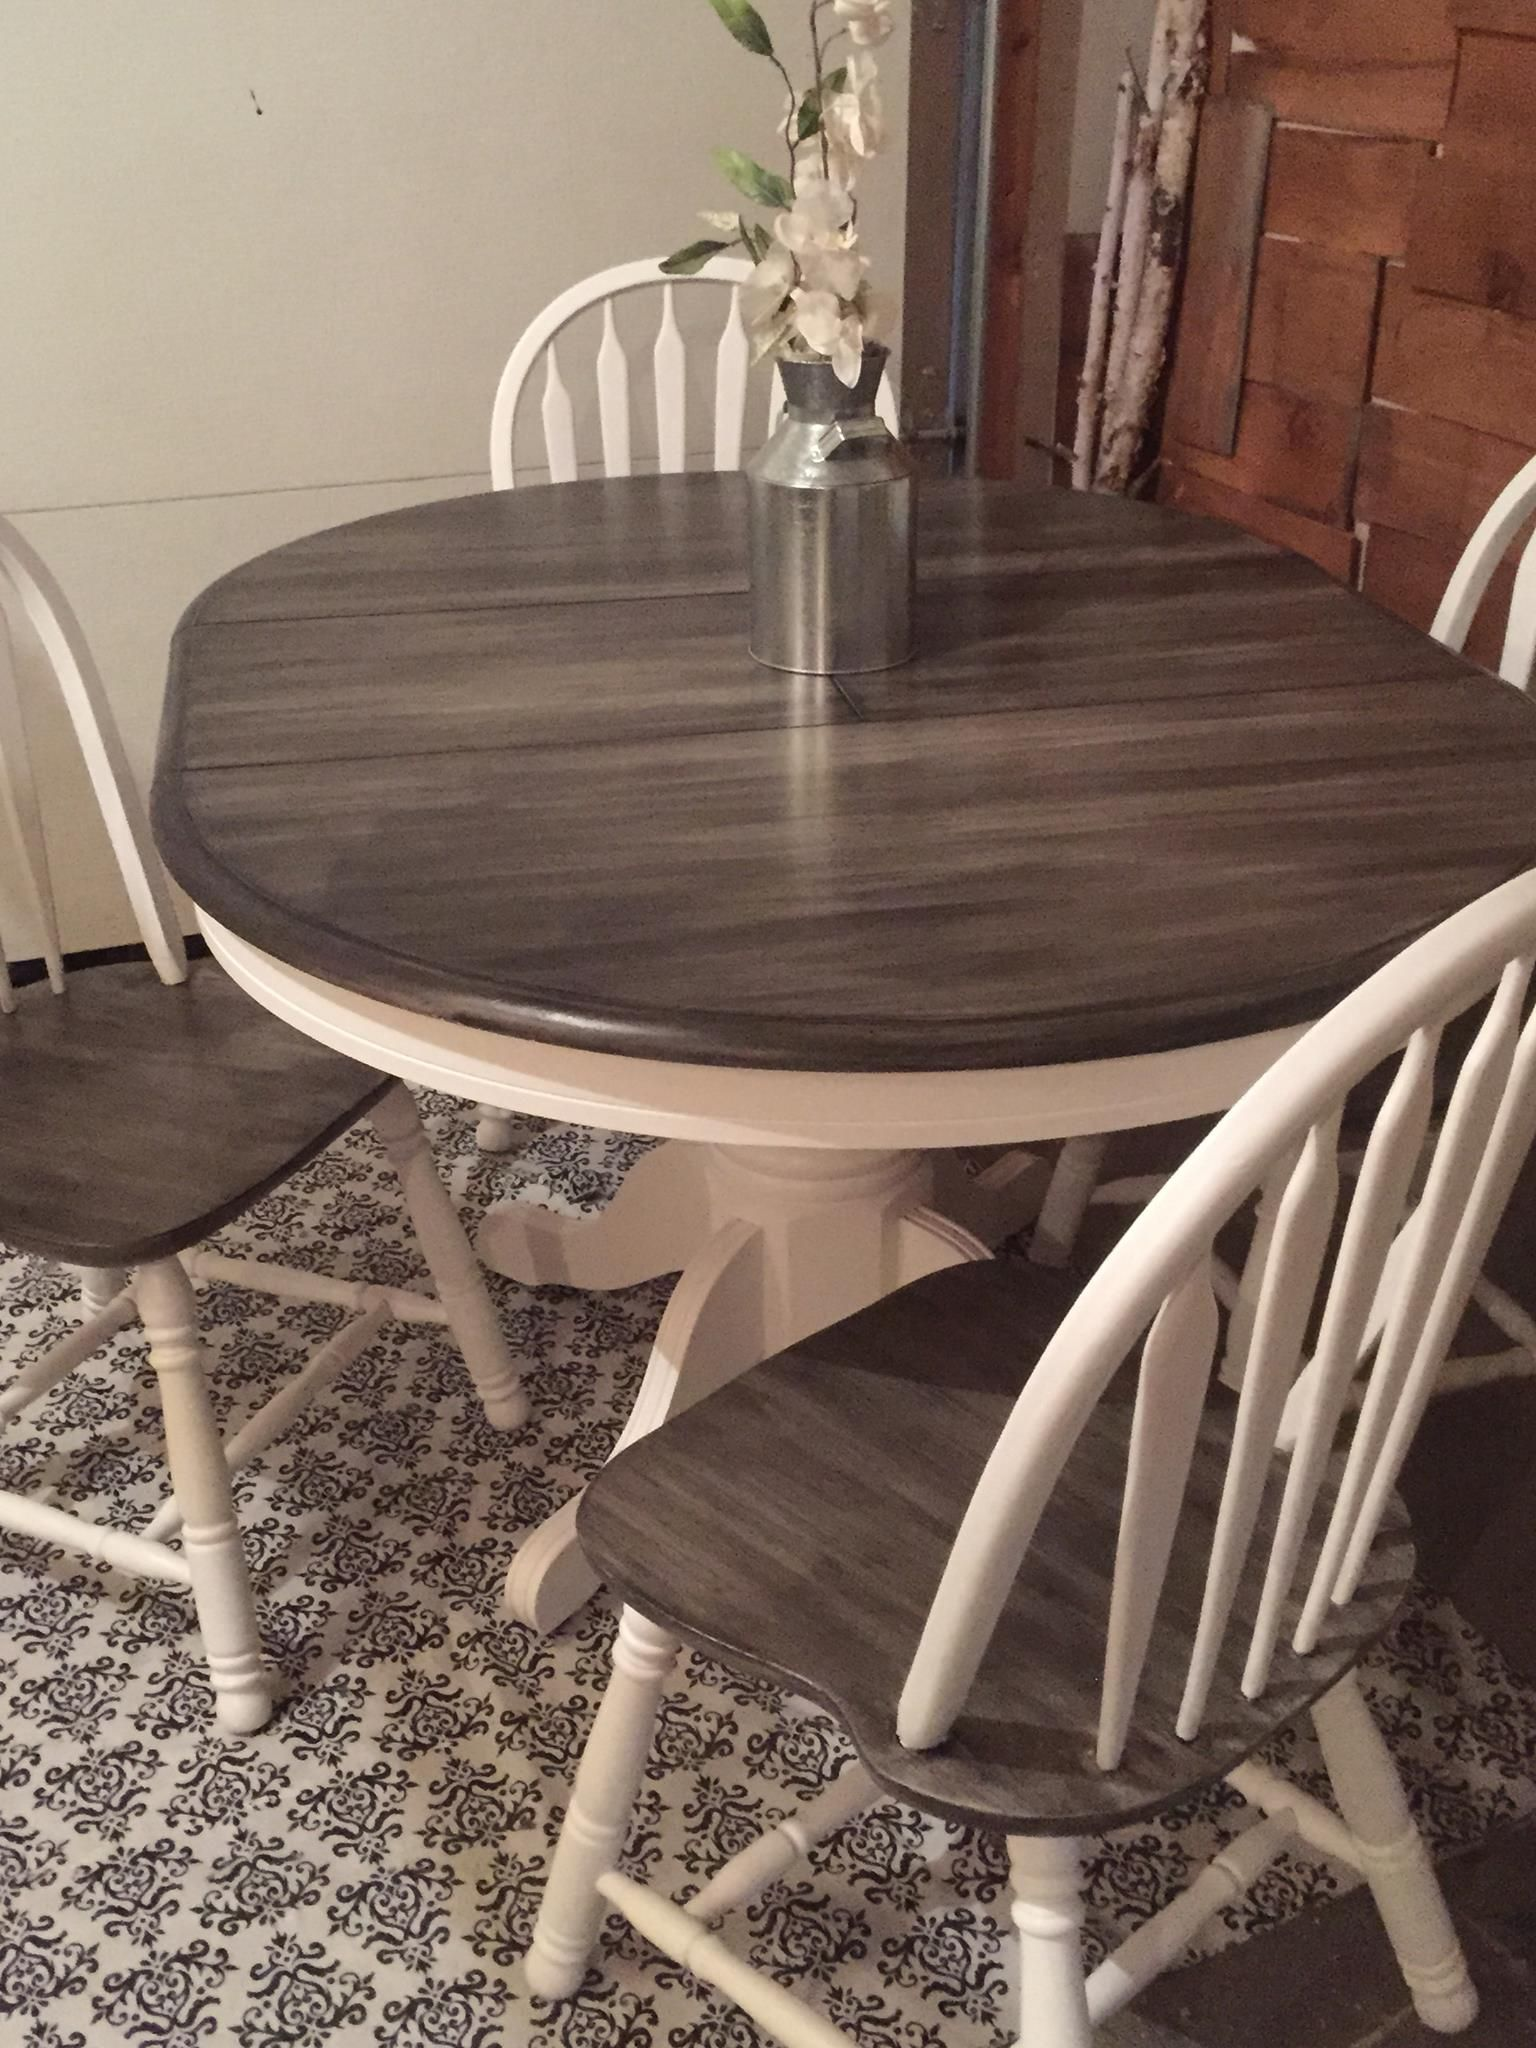 Snow white milk paint with pitch black glaze effect dining set glaze furniture rehab